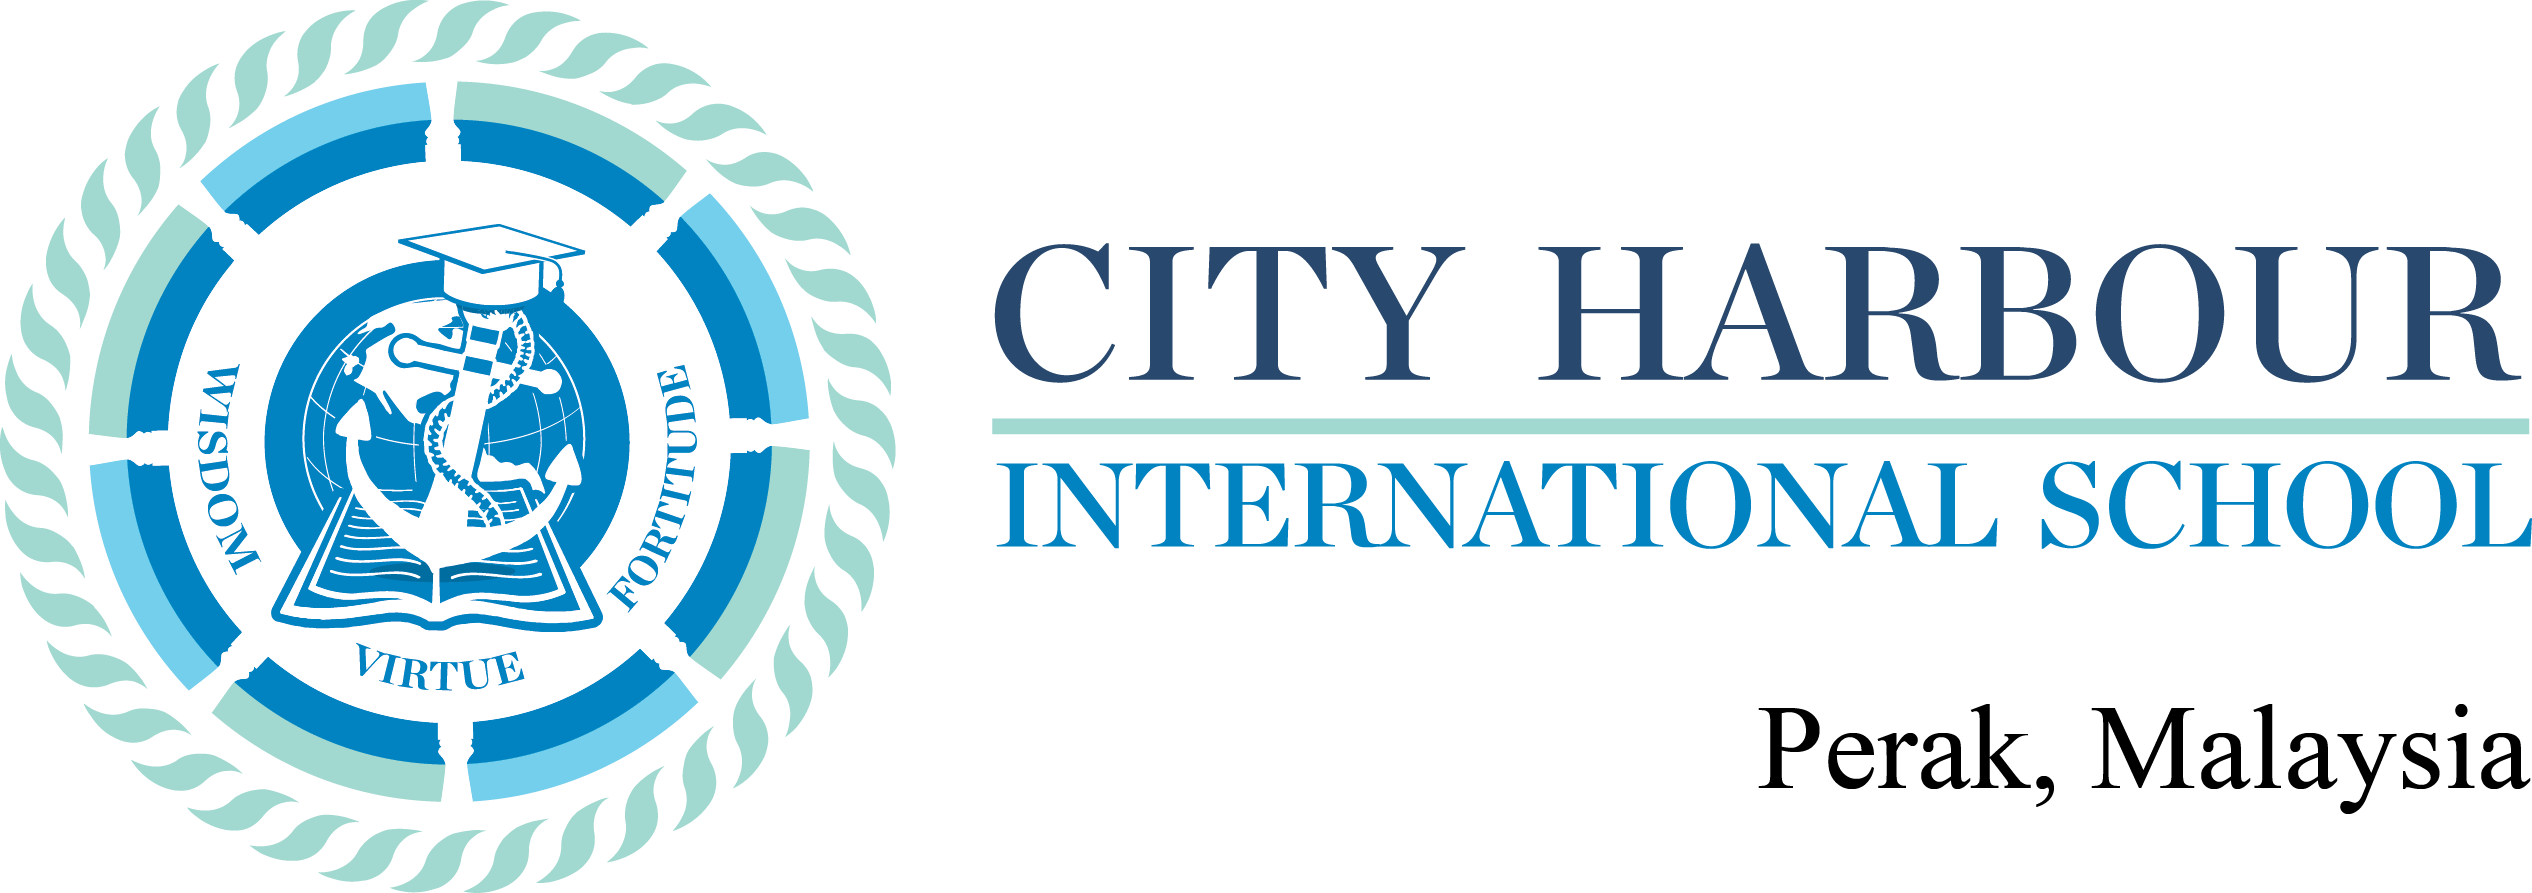 City Harbour International School